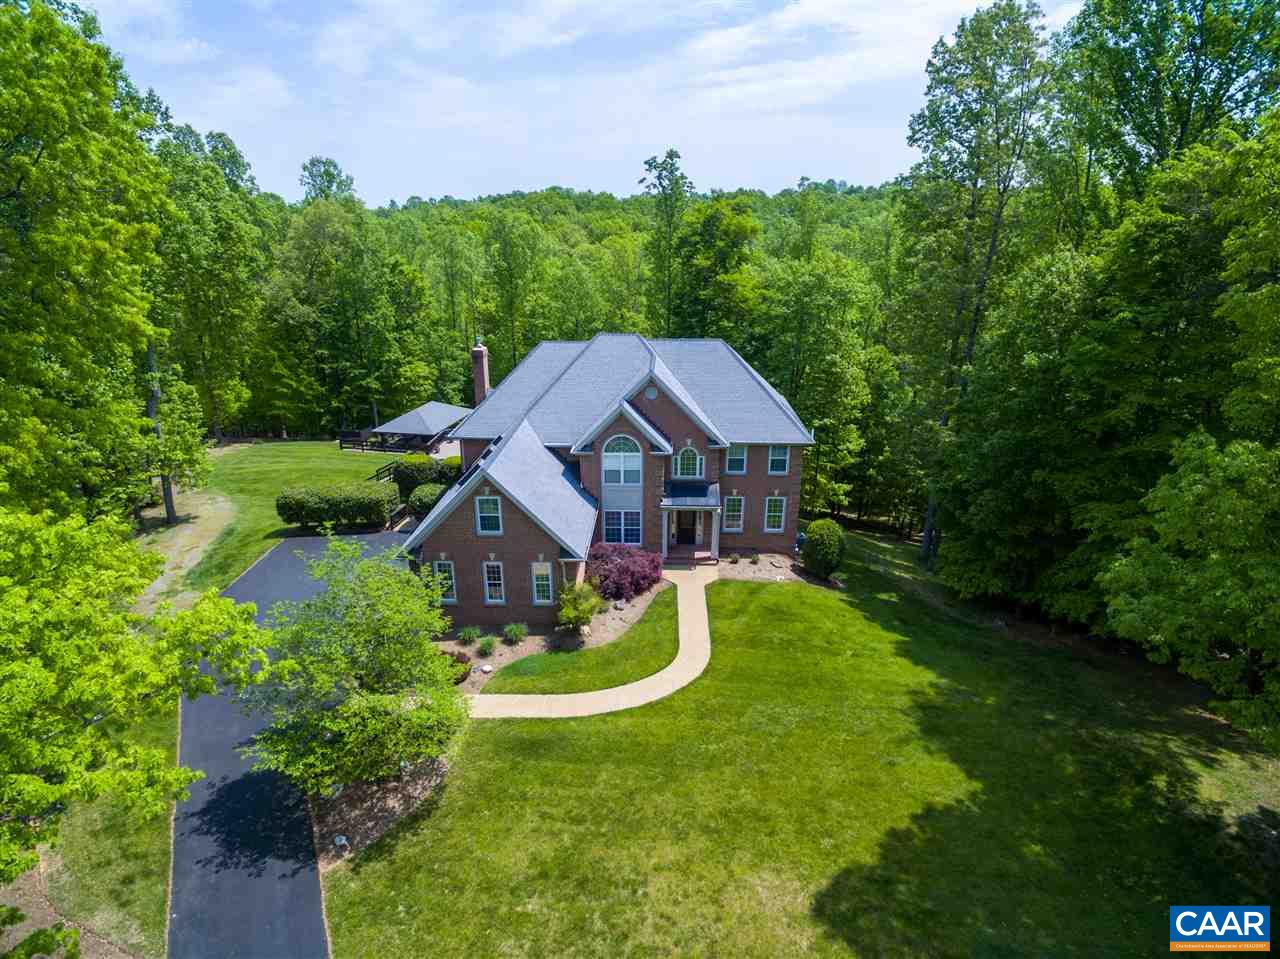 Extremely Private 5.81 Acres at the end of a cul-de-sac. Just 8 mins to Charlottesville in the Fox Hunt area of Western Albemarle County. Owner/Agent.